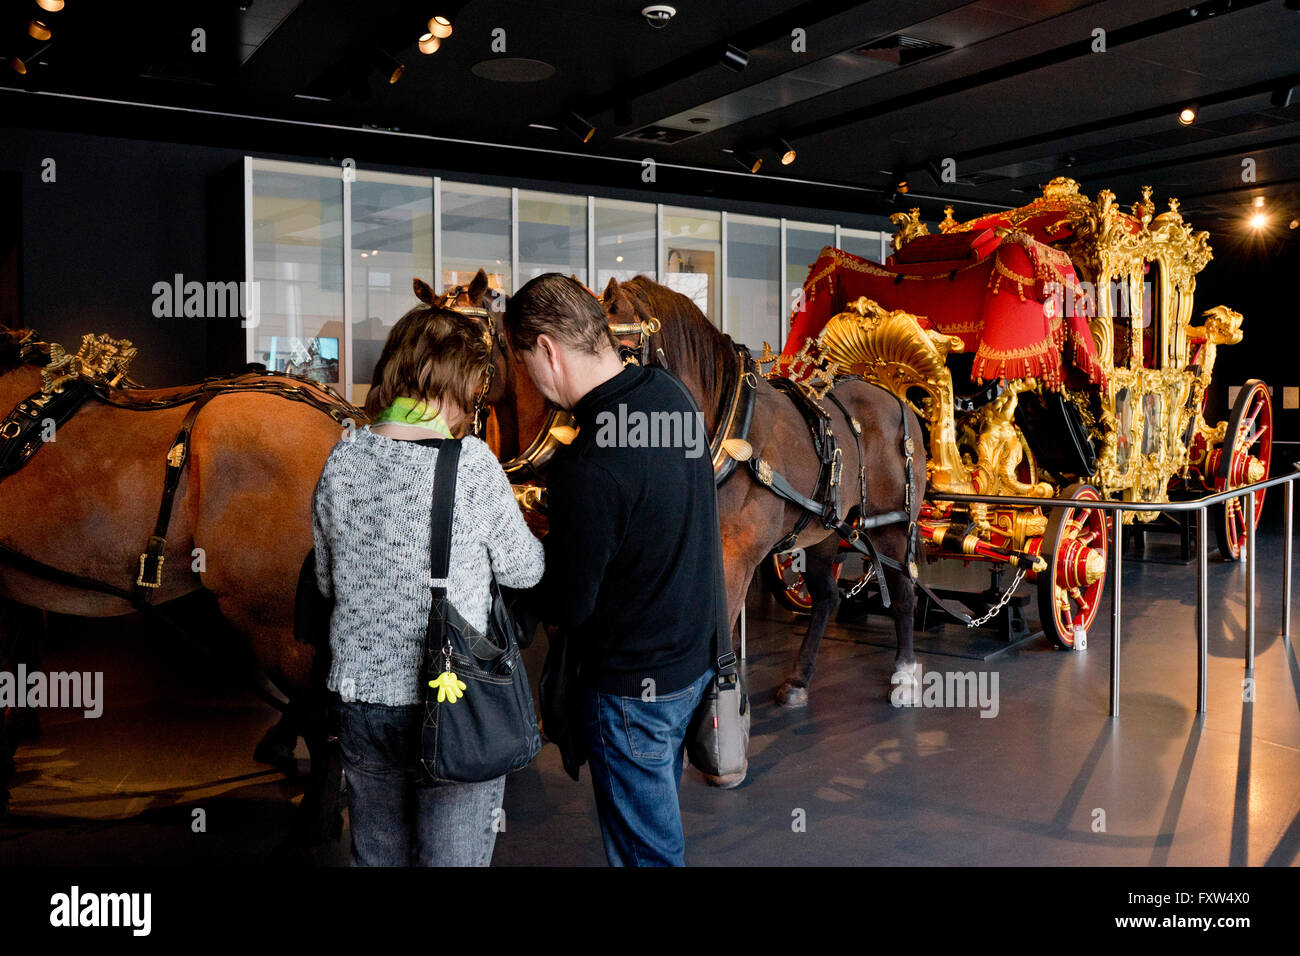 Visitors to the Museum of London inspect the Lord Mayor carriage. London, England, UK - Stock Image